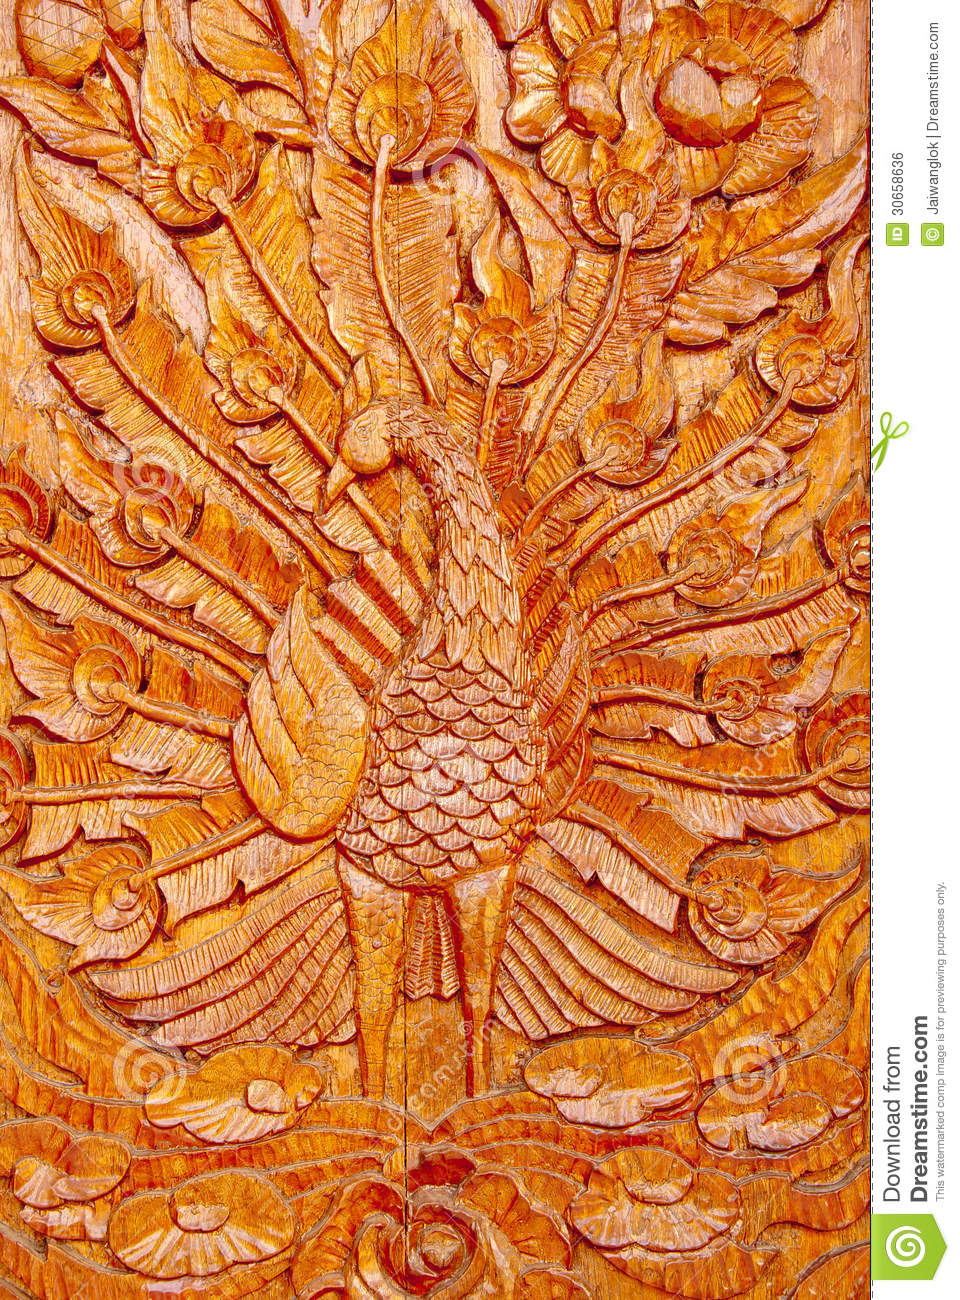 Wood Peacock Carving Royalty Free Stock Image - Image: 30658636